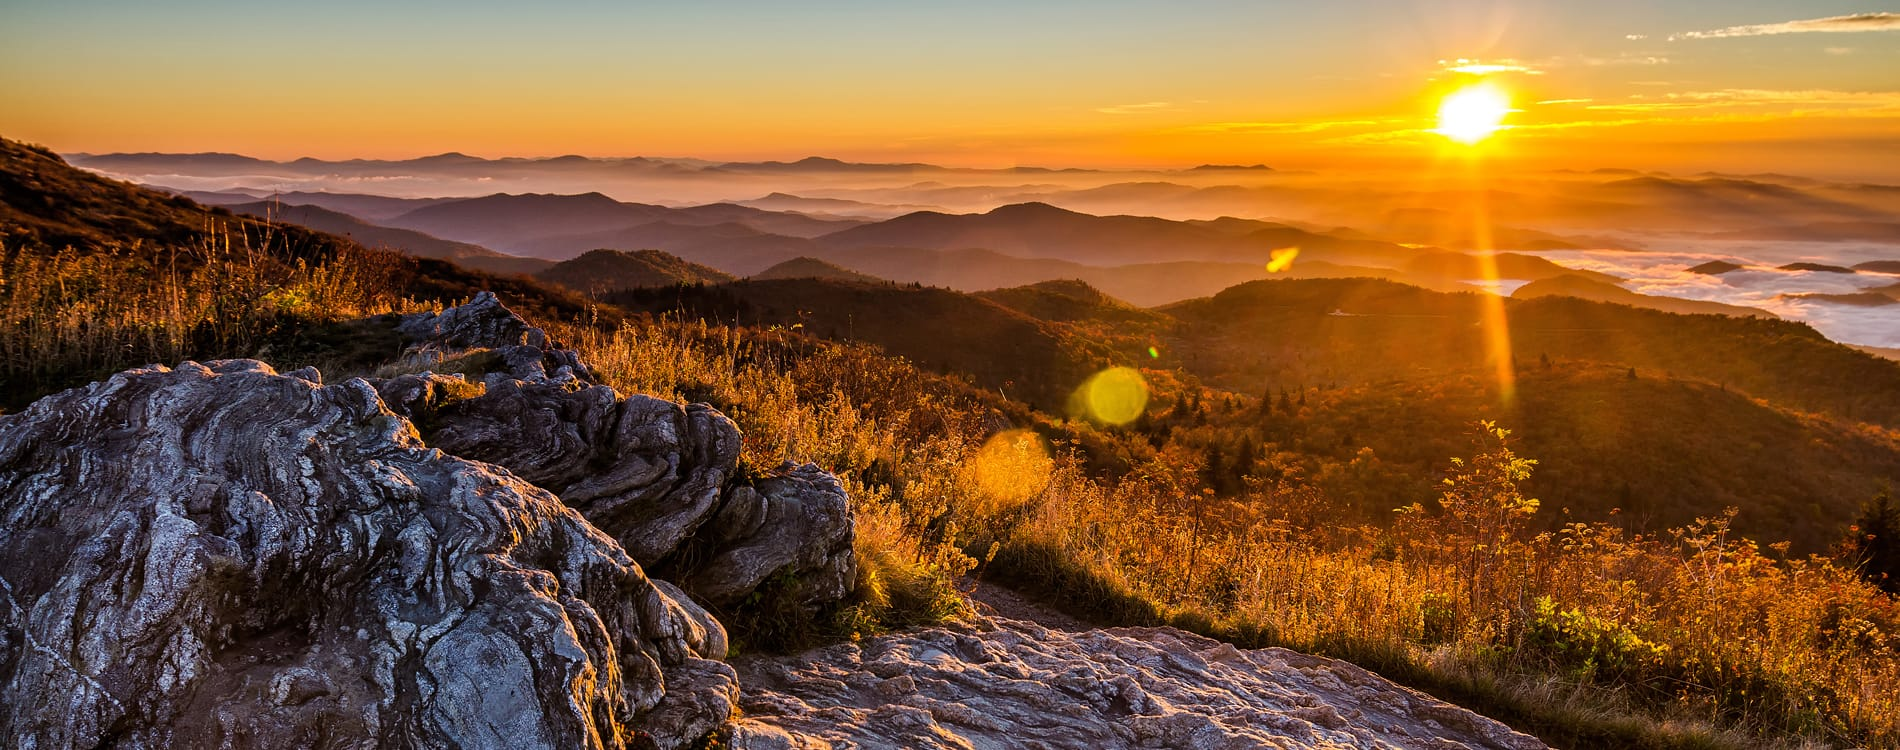 Asheville, NC - Sunrise Over Blue Ridge Mountains from Black Balsam Bald